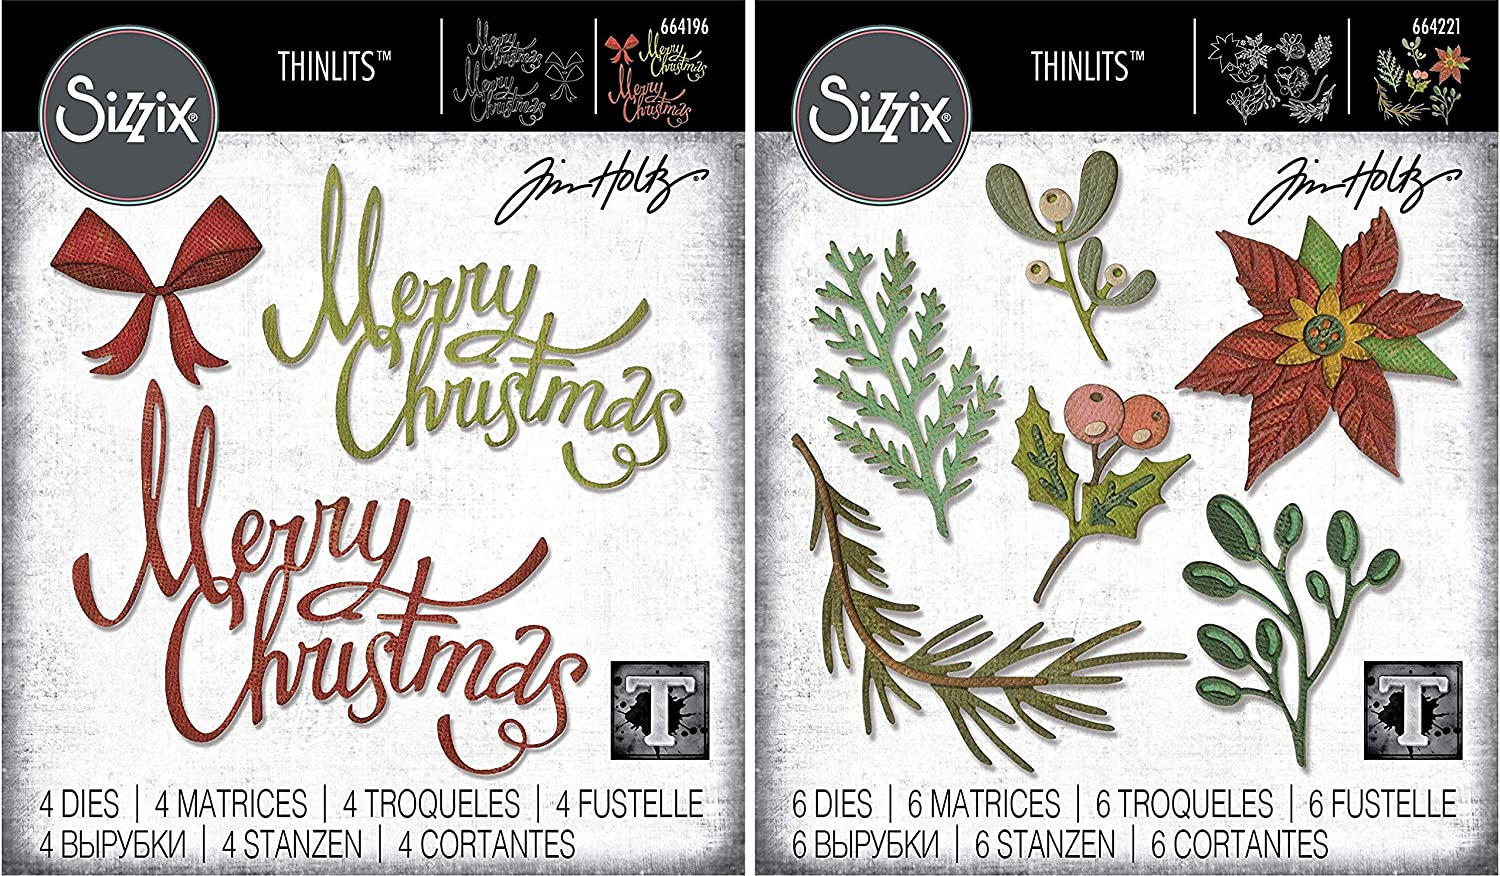 Tim Holtz Sizzix Seasonal 2019 Thinlit Sets - Merry Christmas Ribbon and Large Funky Festive - 2 Items